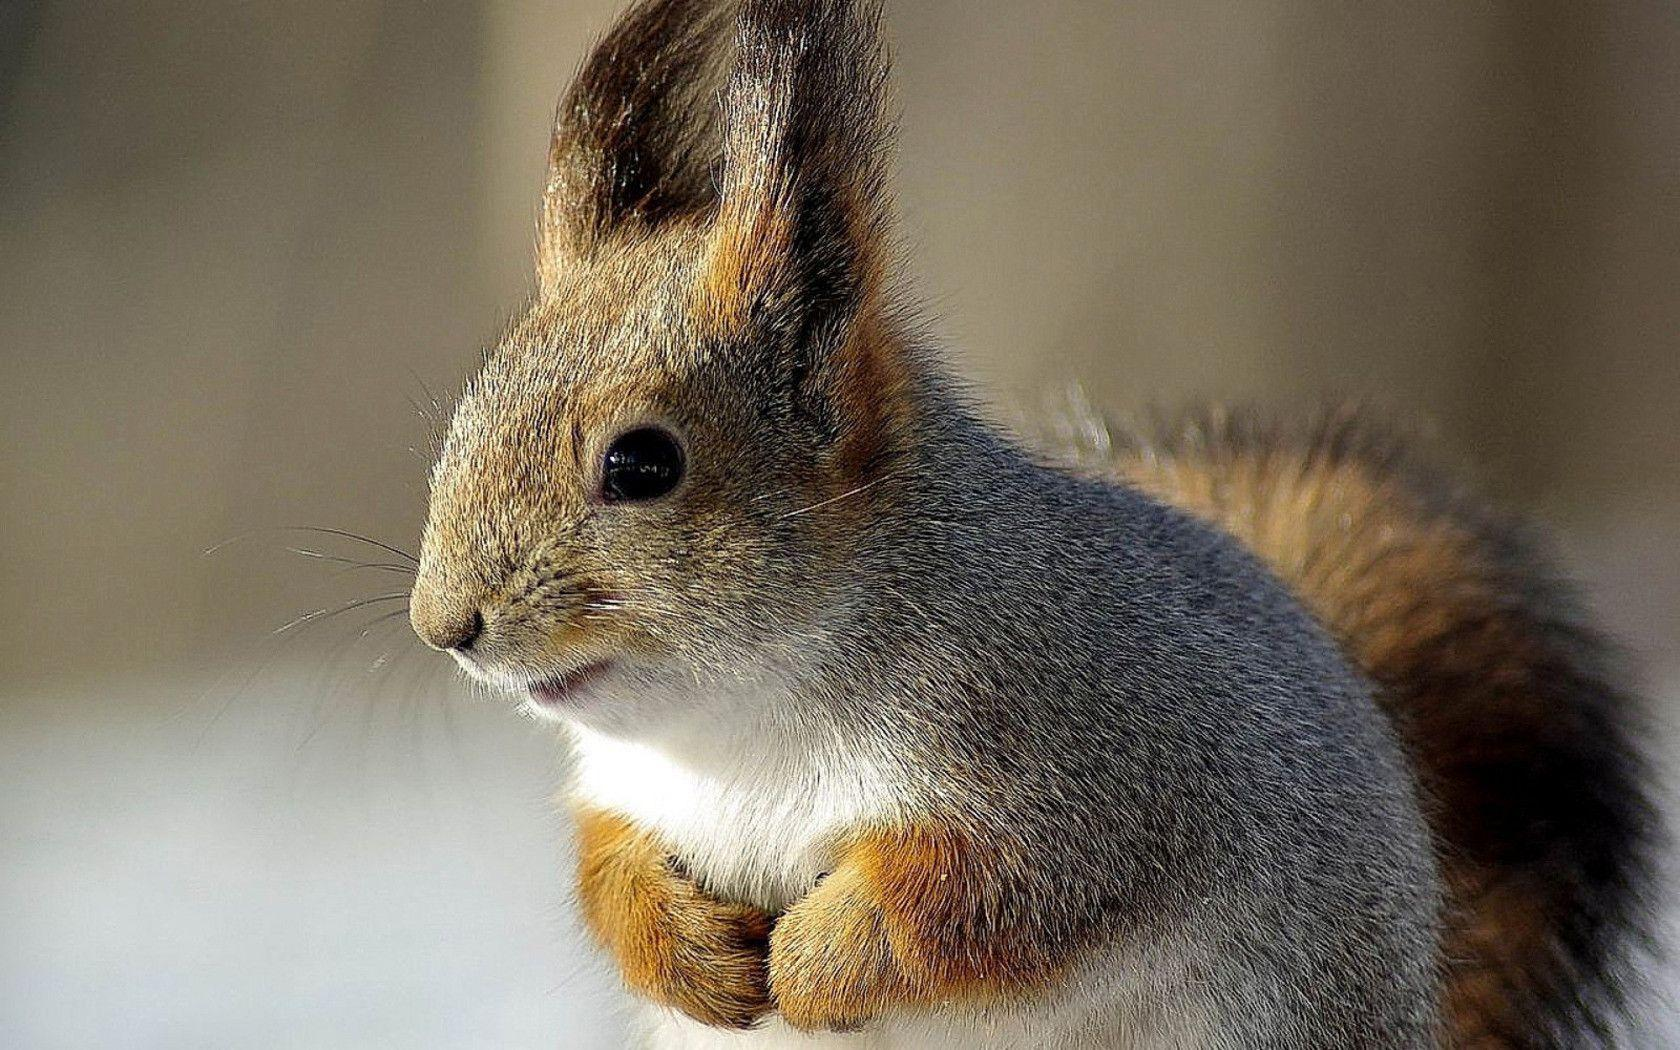 Squirrel wallpapers and images - wallpapers, pictures, photos